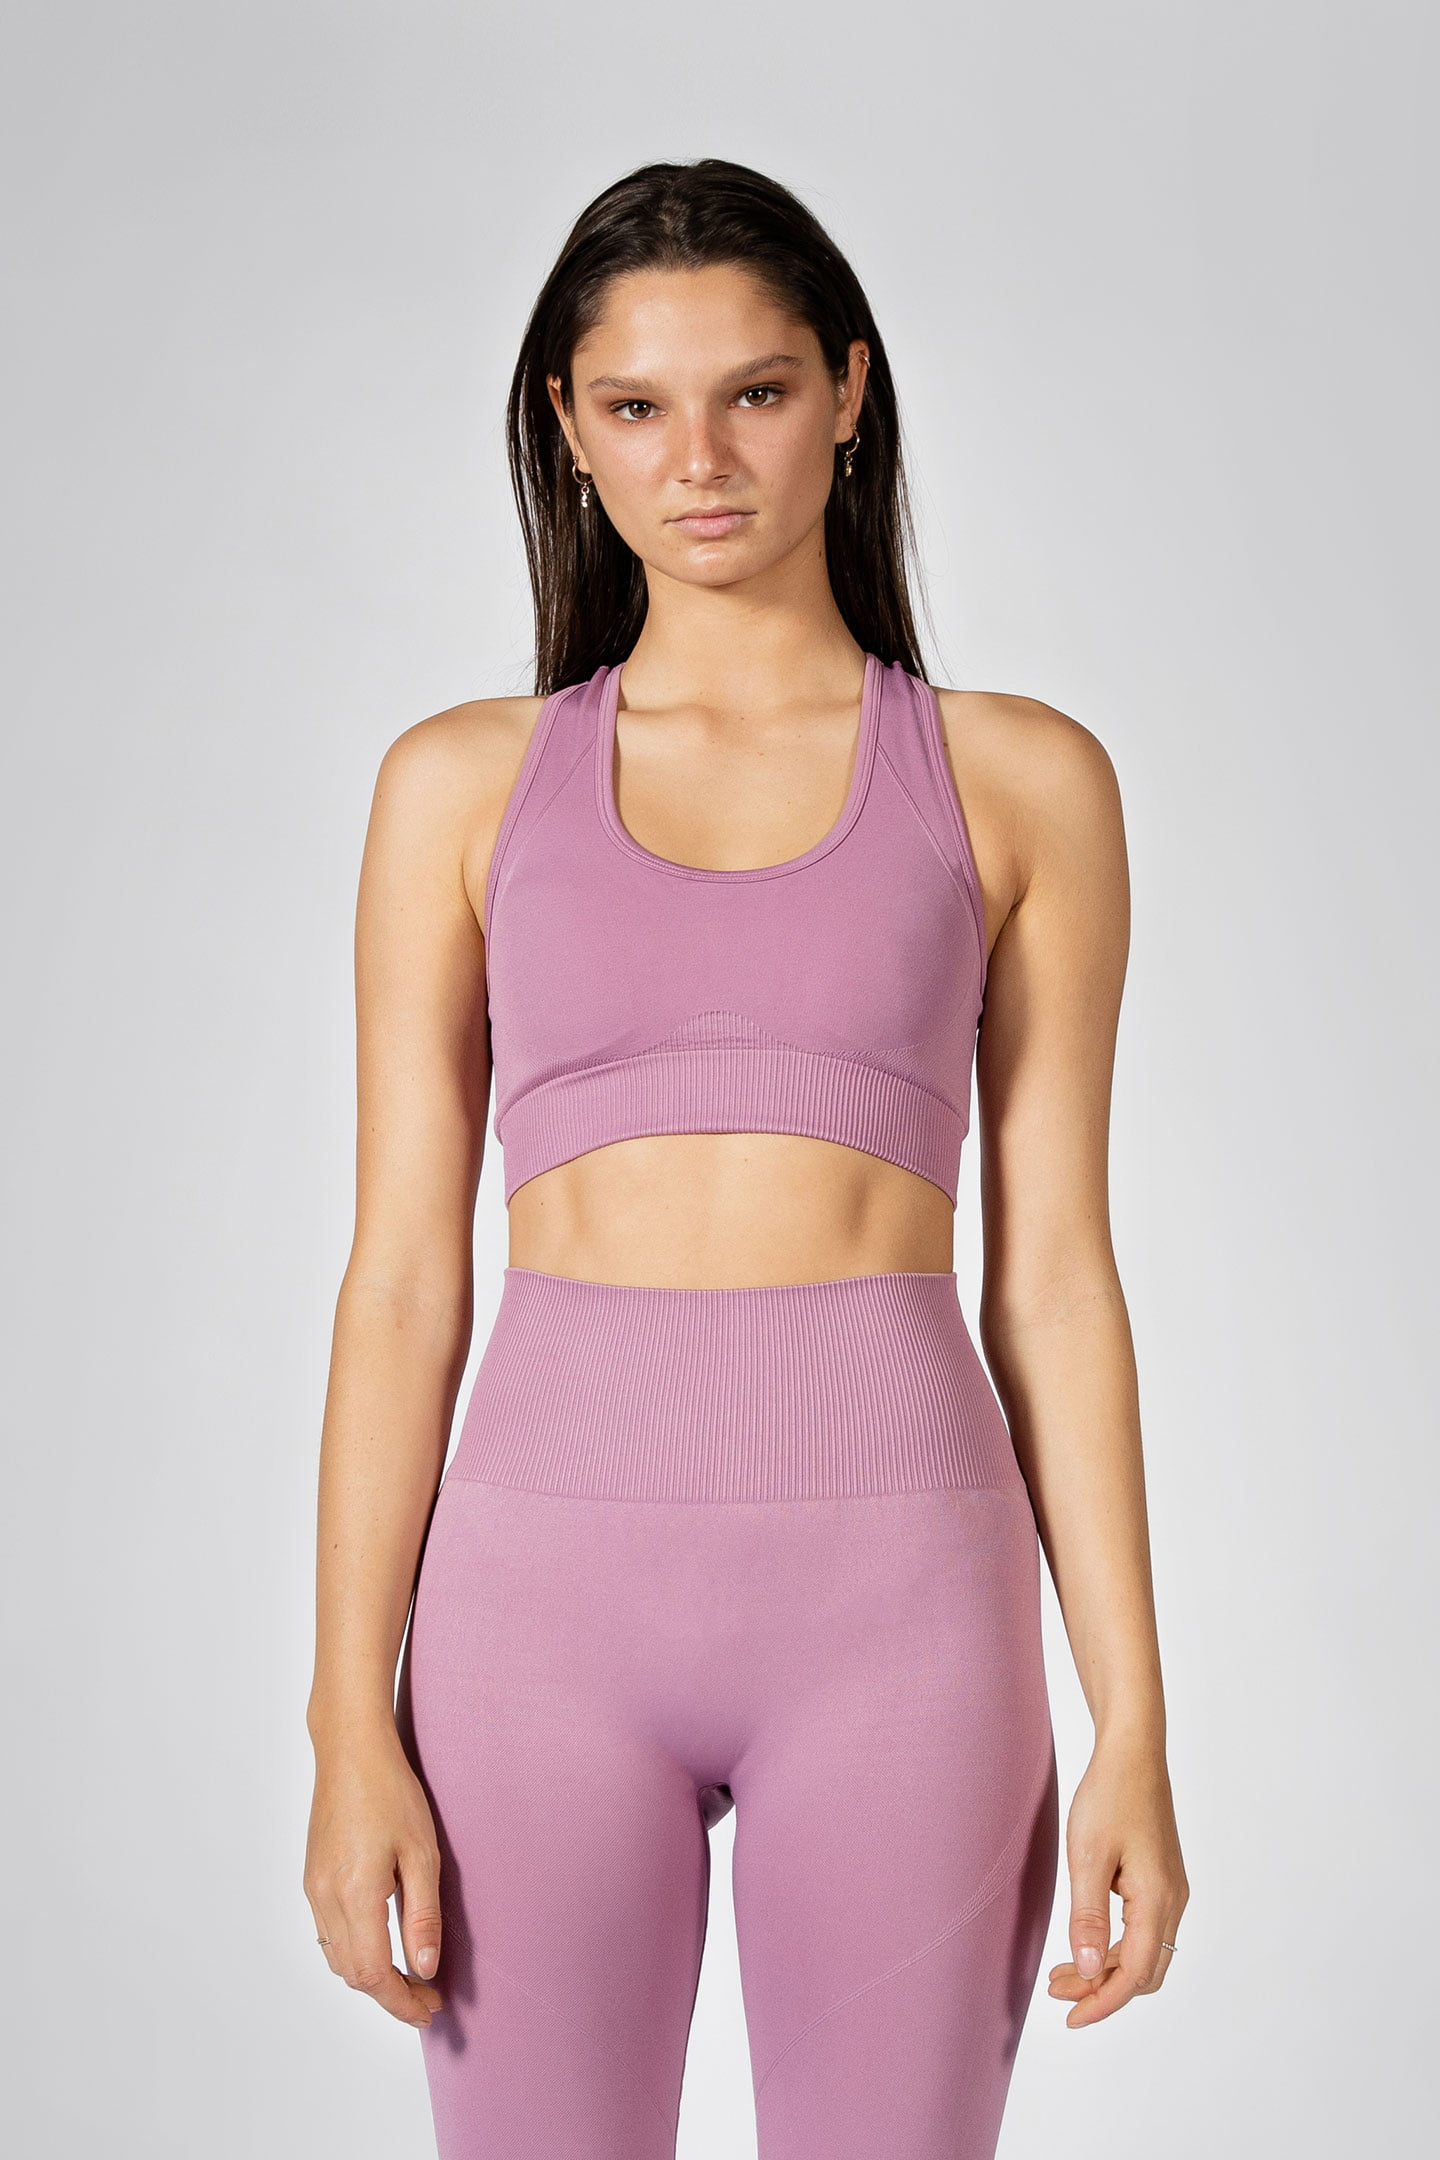 fit model posing in seamless sports bra in lilac colour